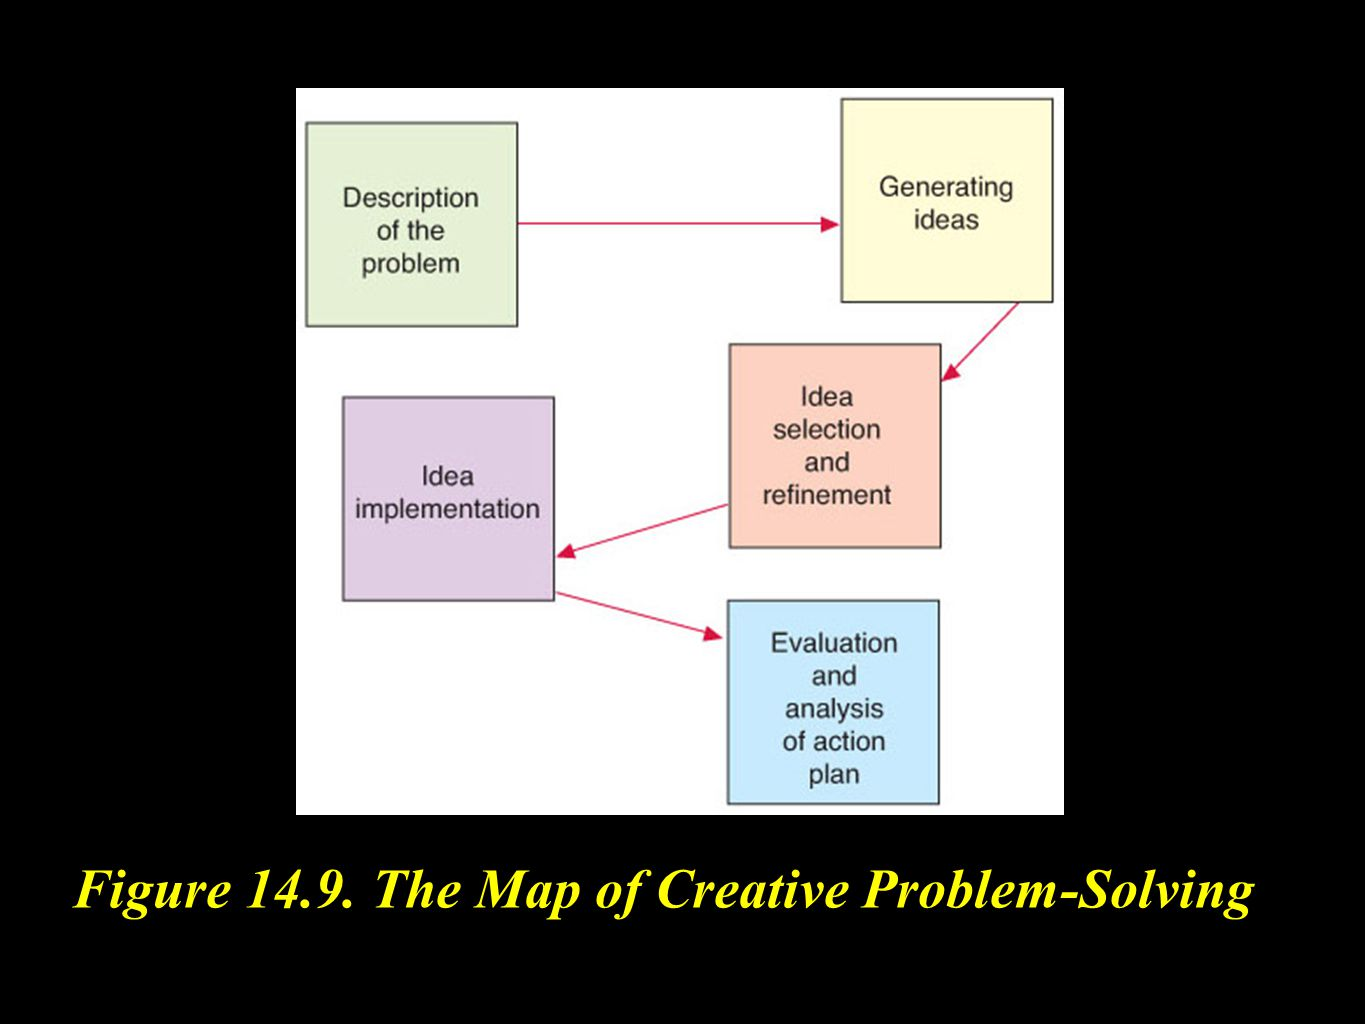 Figure 14.9. The Map of Creative Problem-Solving